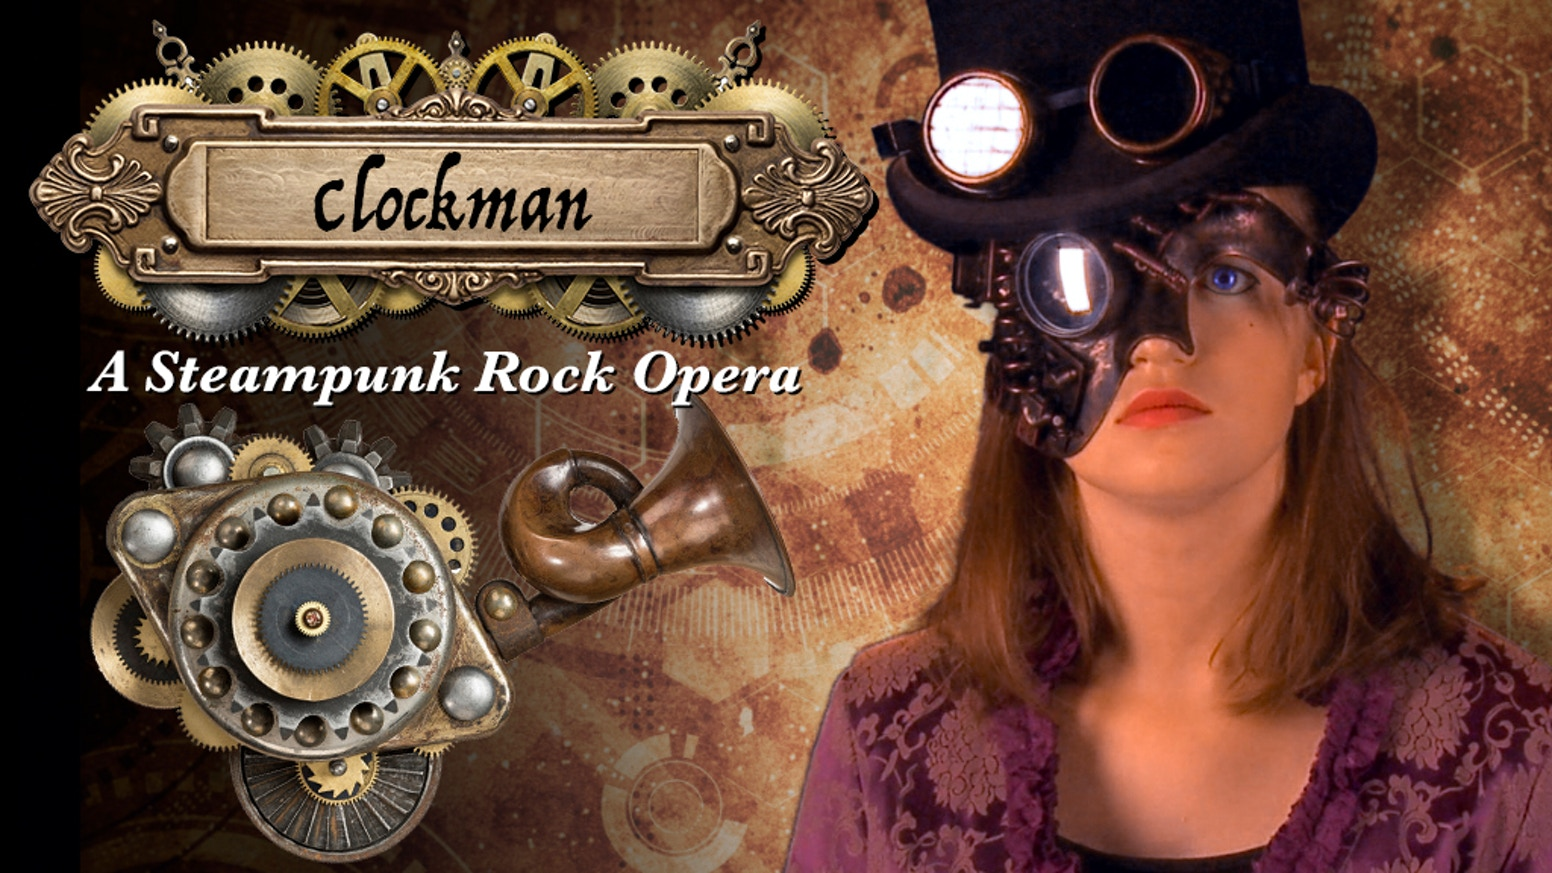 clockman a steampunk rock opera by quirky engine entertainment kickstarter. Black Bedroom Furniture Sets. Home Design Ideas